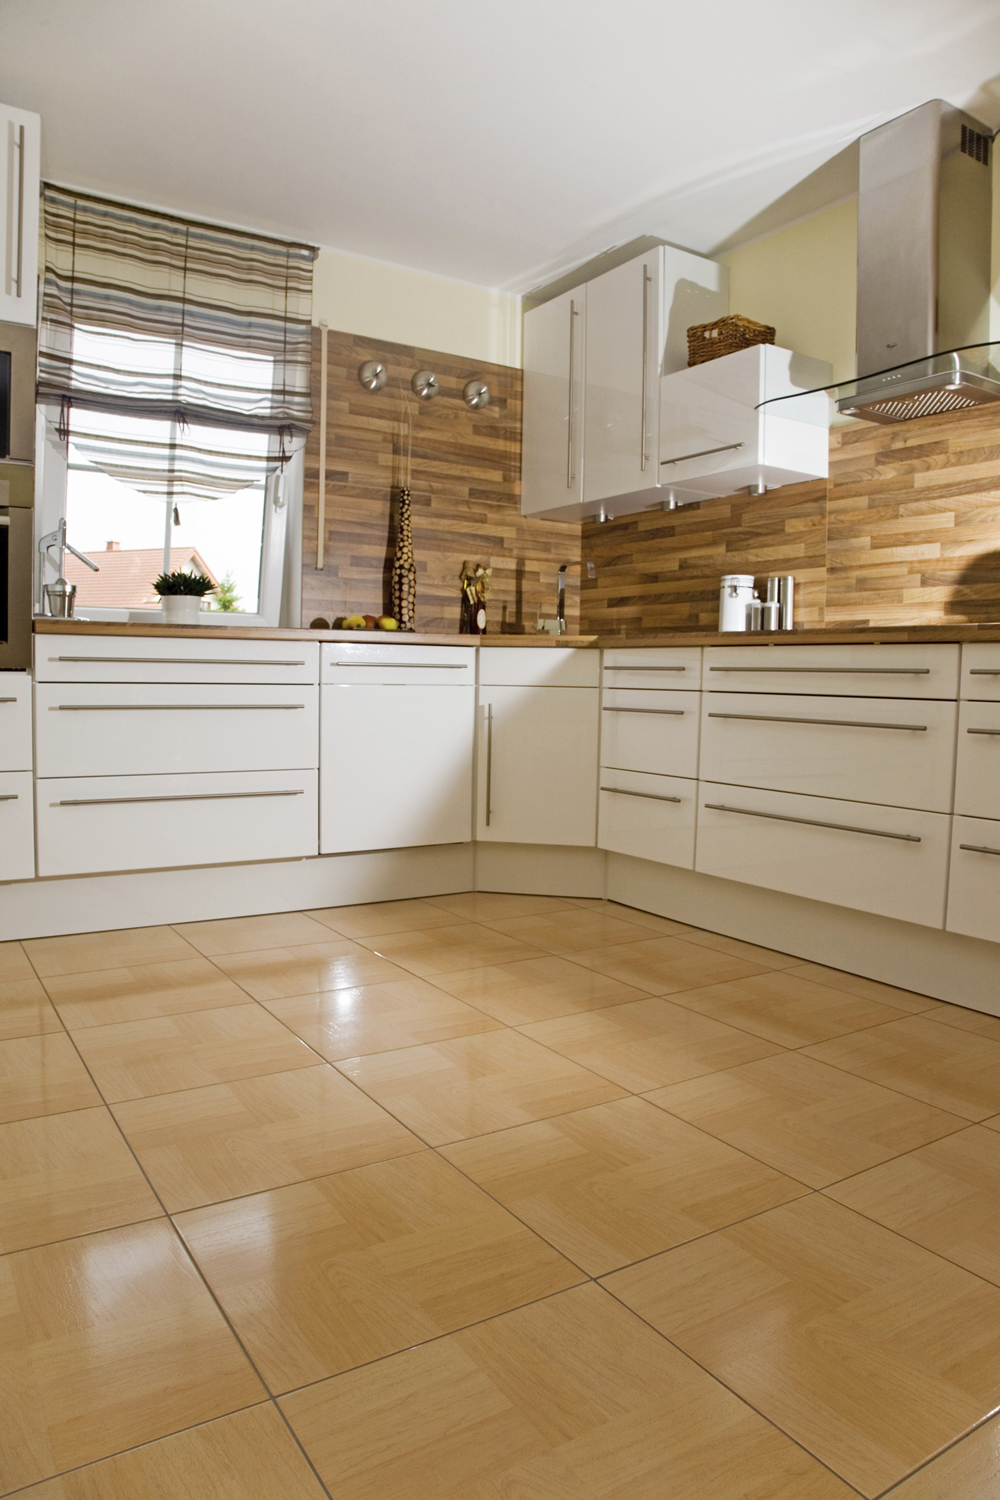 Ceramic Kitchen Floor Design Ideas ~ Flooring brisk living